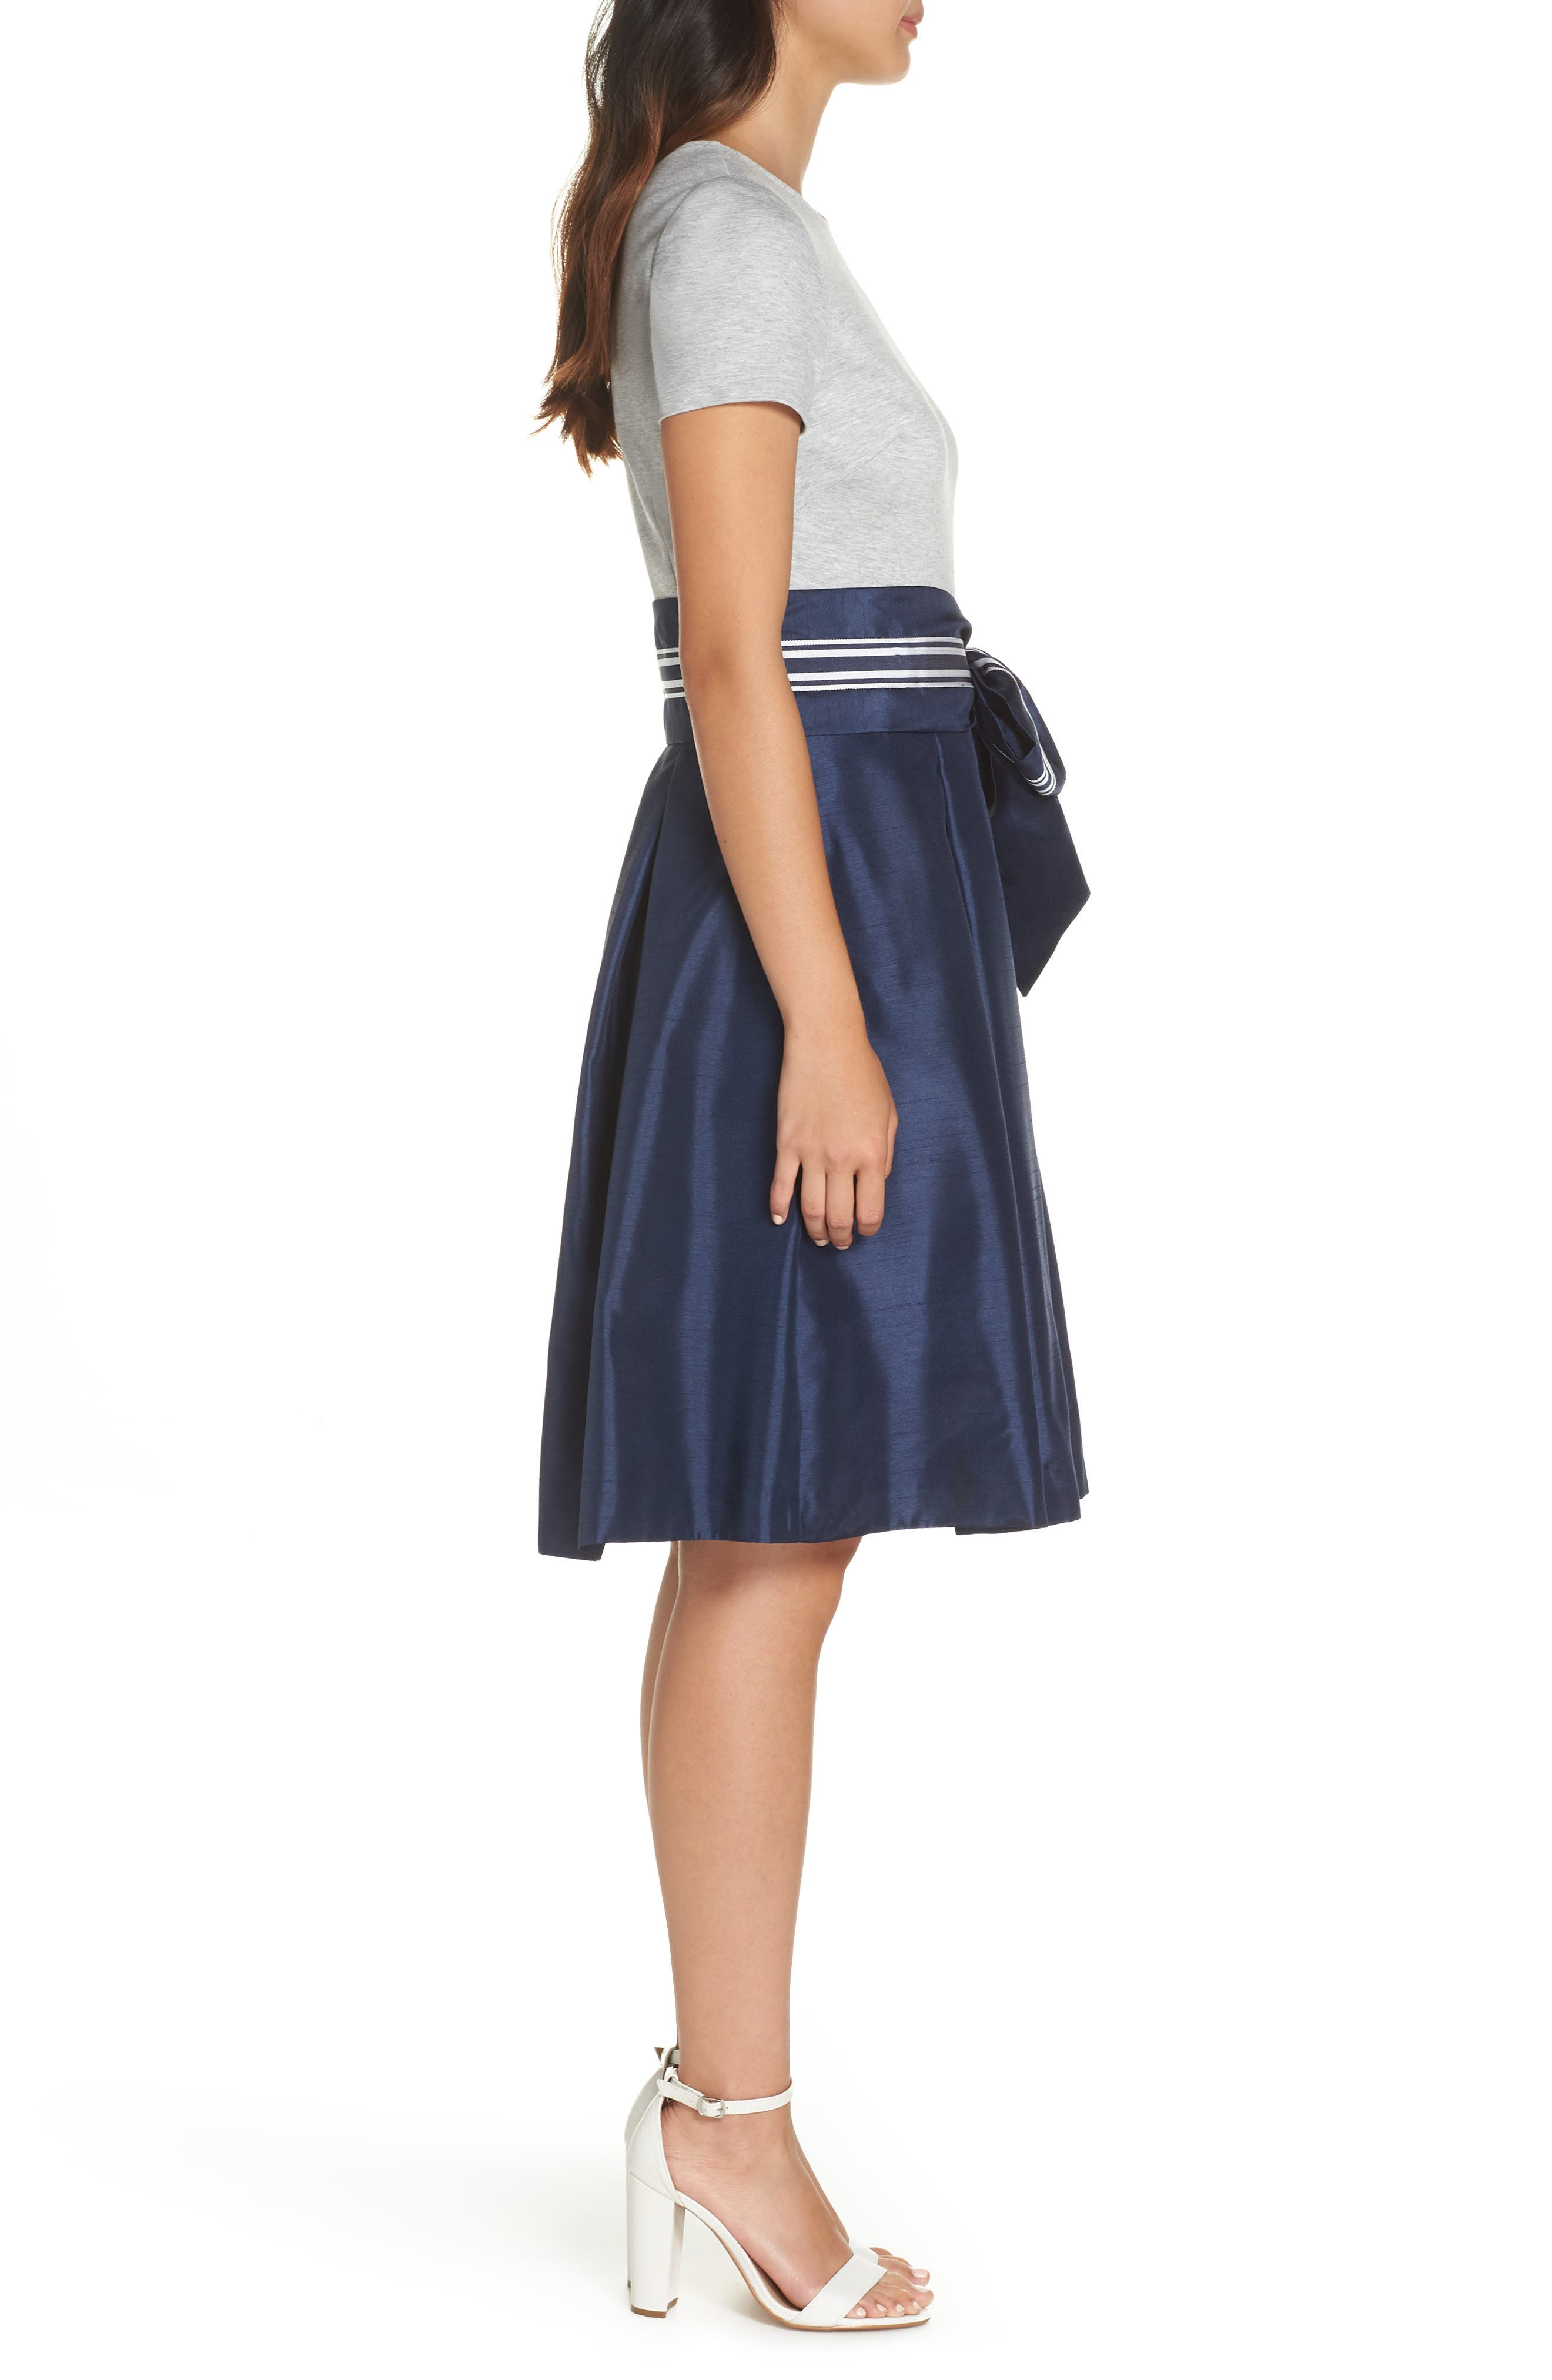 Mixed Media Dress,                             Alternate thumbnail 3, color,                             GREY- NAVY COLORBLOCK